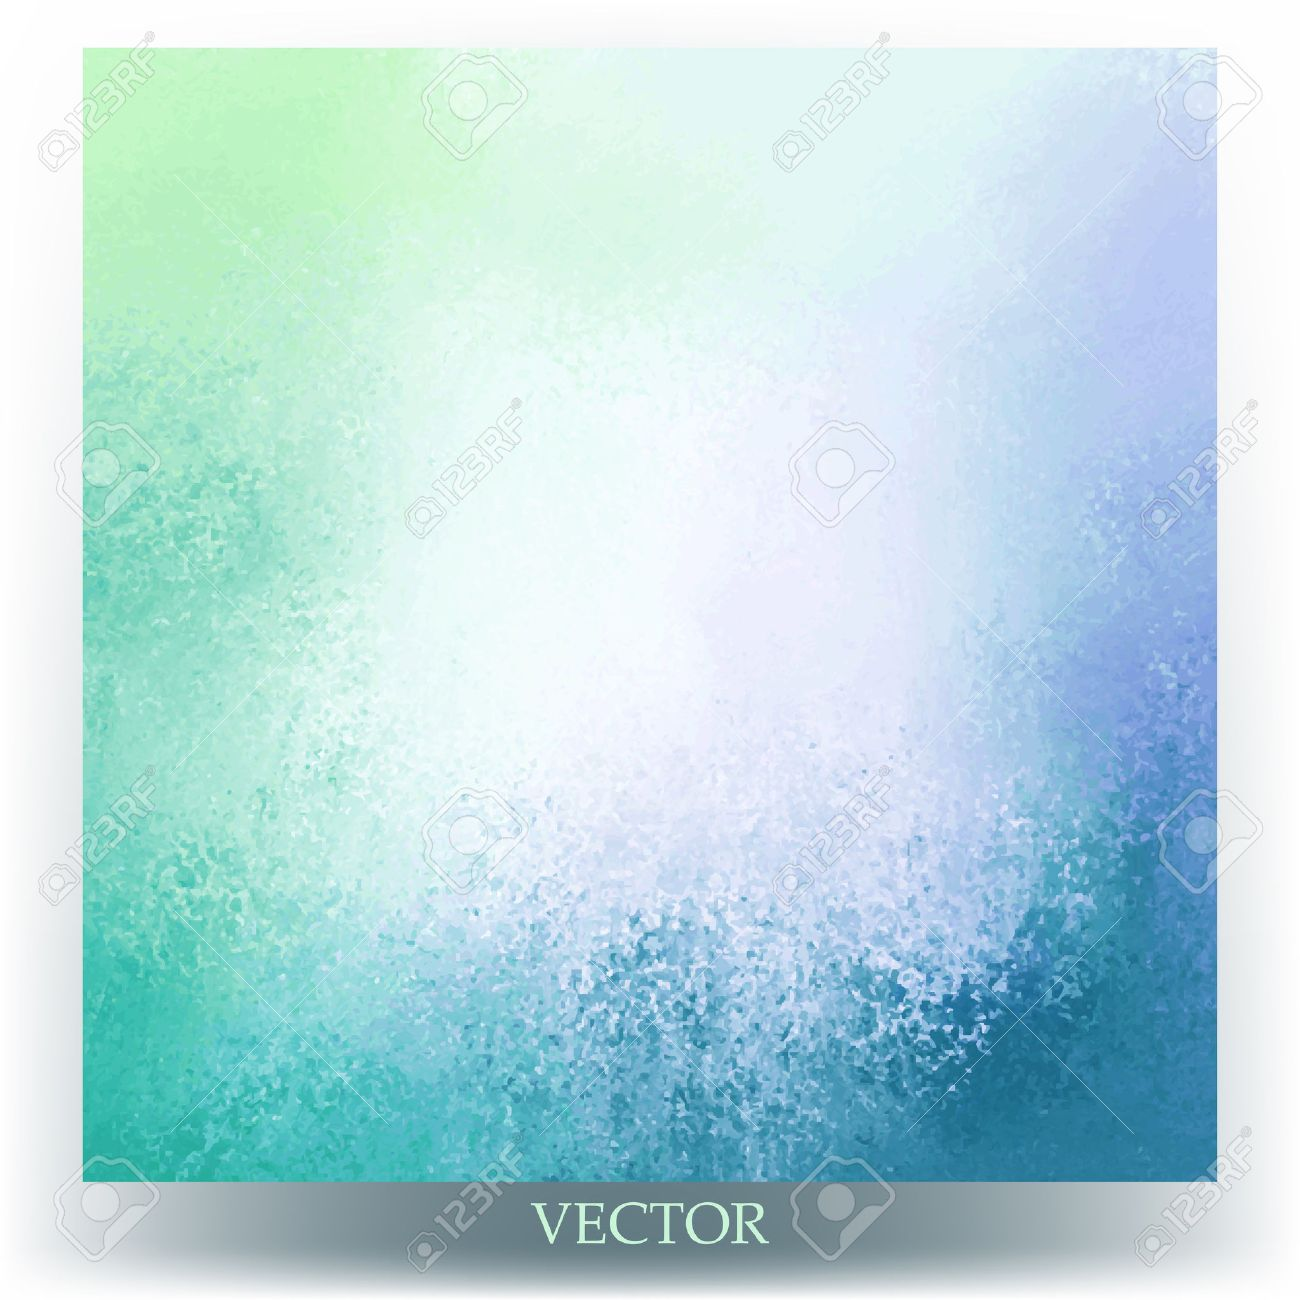 Abstract Background Vector Blue And Green Spring Colors With